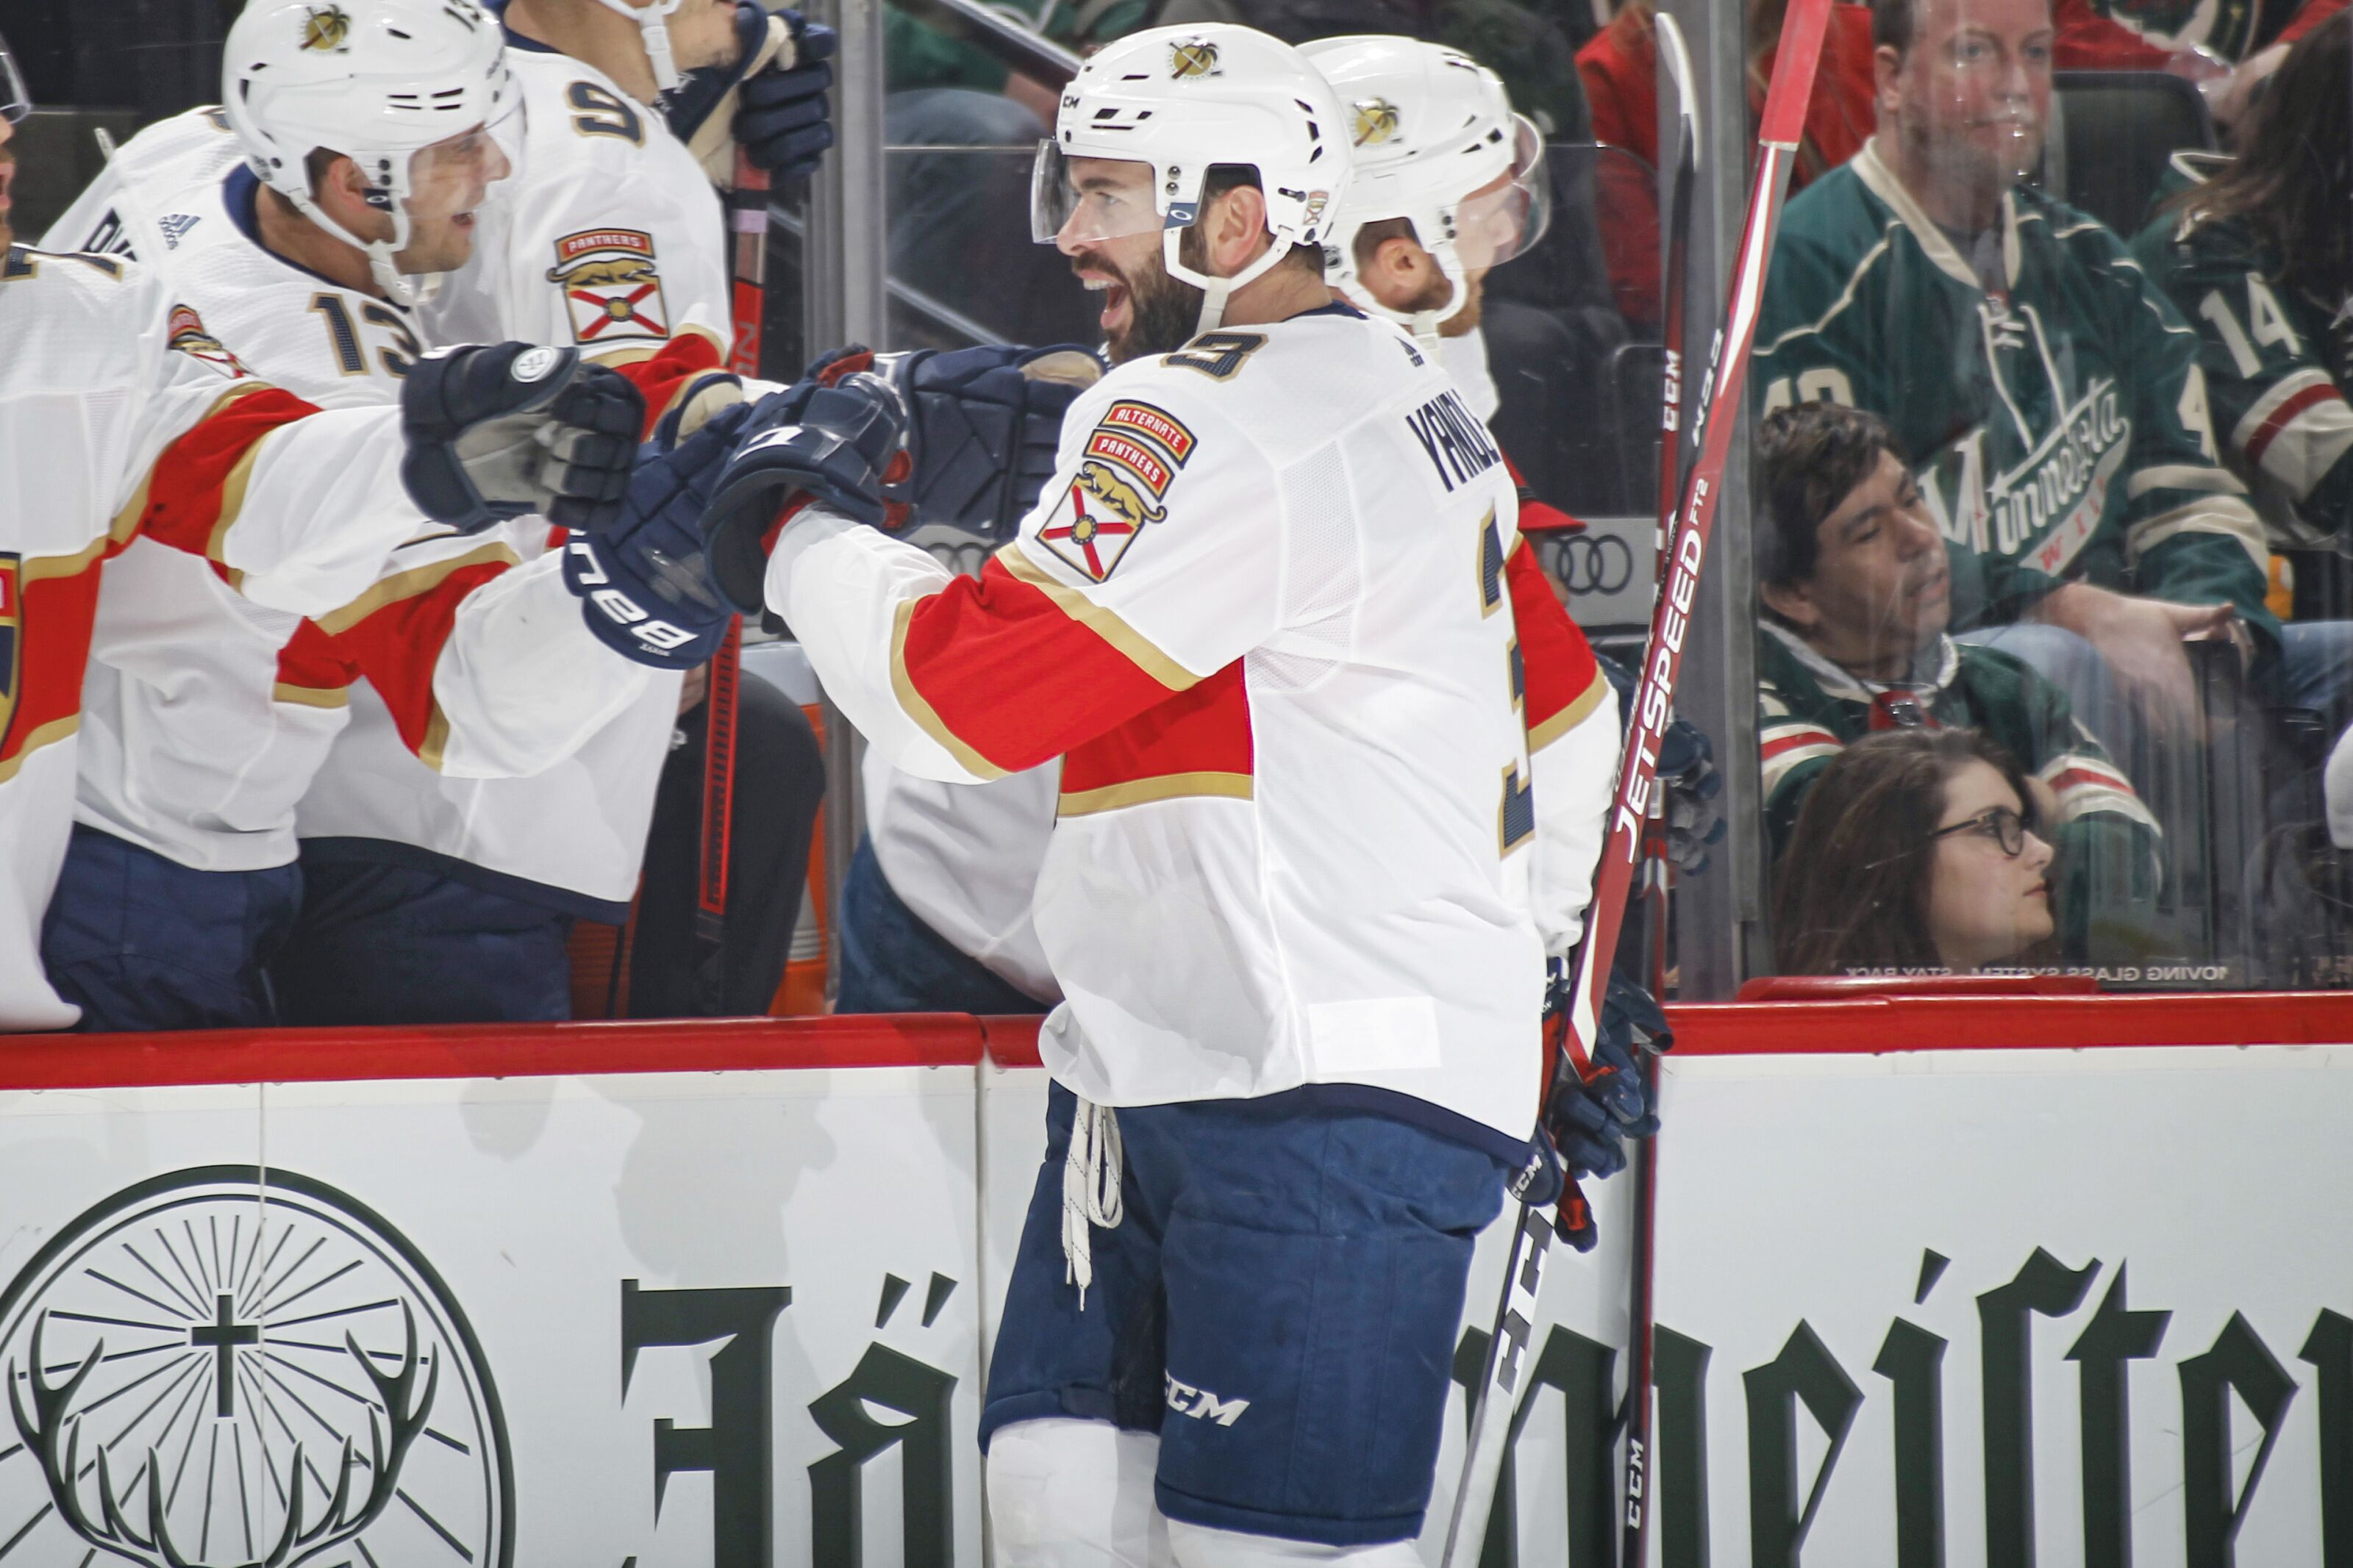 Florida Panthers Complete Comeback in Late Thriller to Win over Wild, 5-4